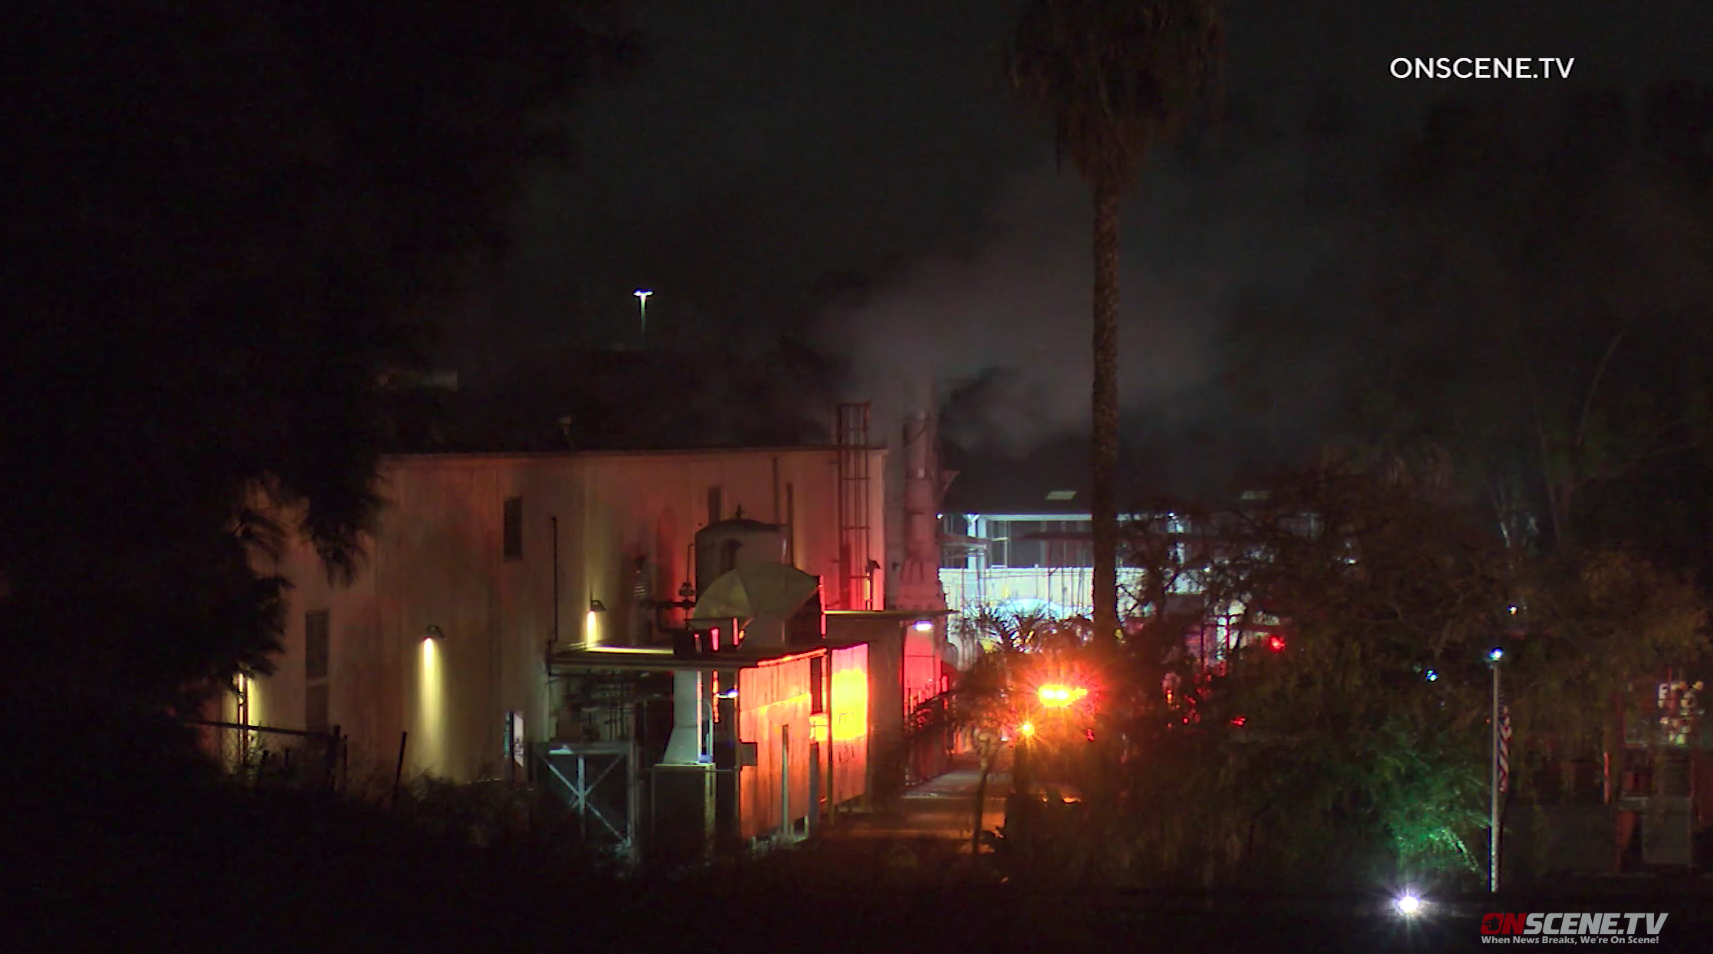 A fire at a commercial structure in Brea on Jan. 2, 2020. (Credit: Onscene.TV)